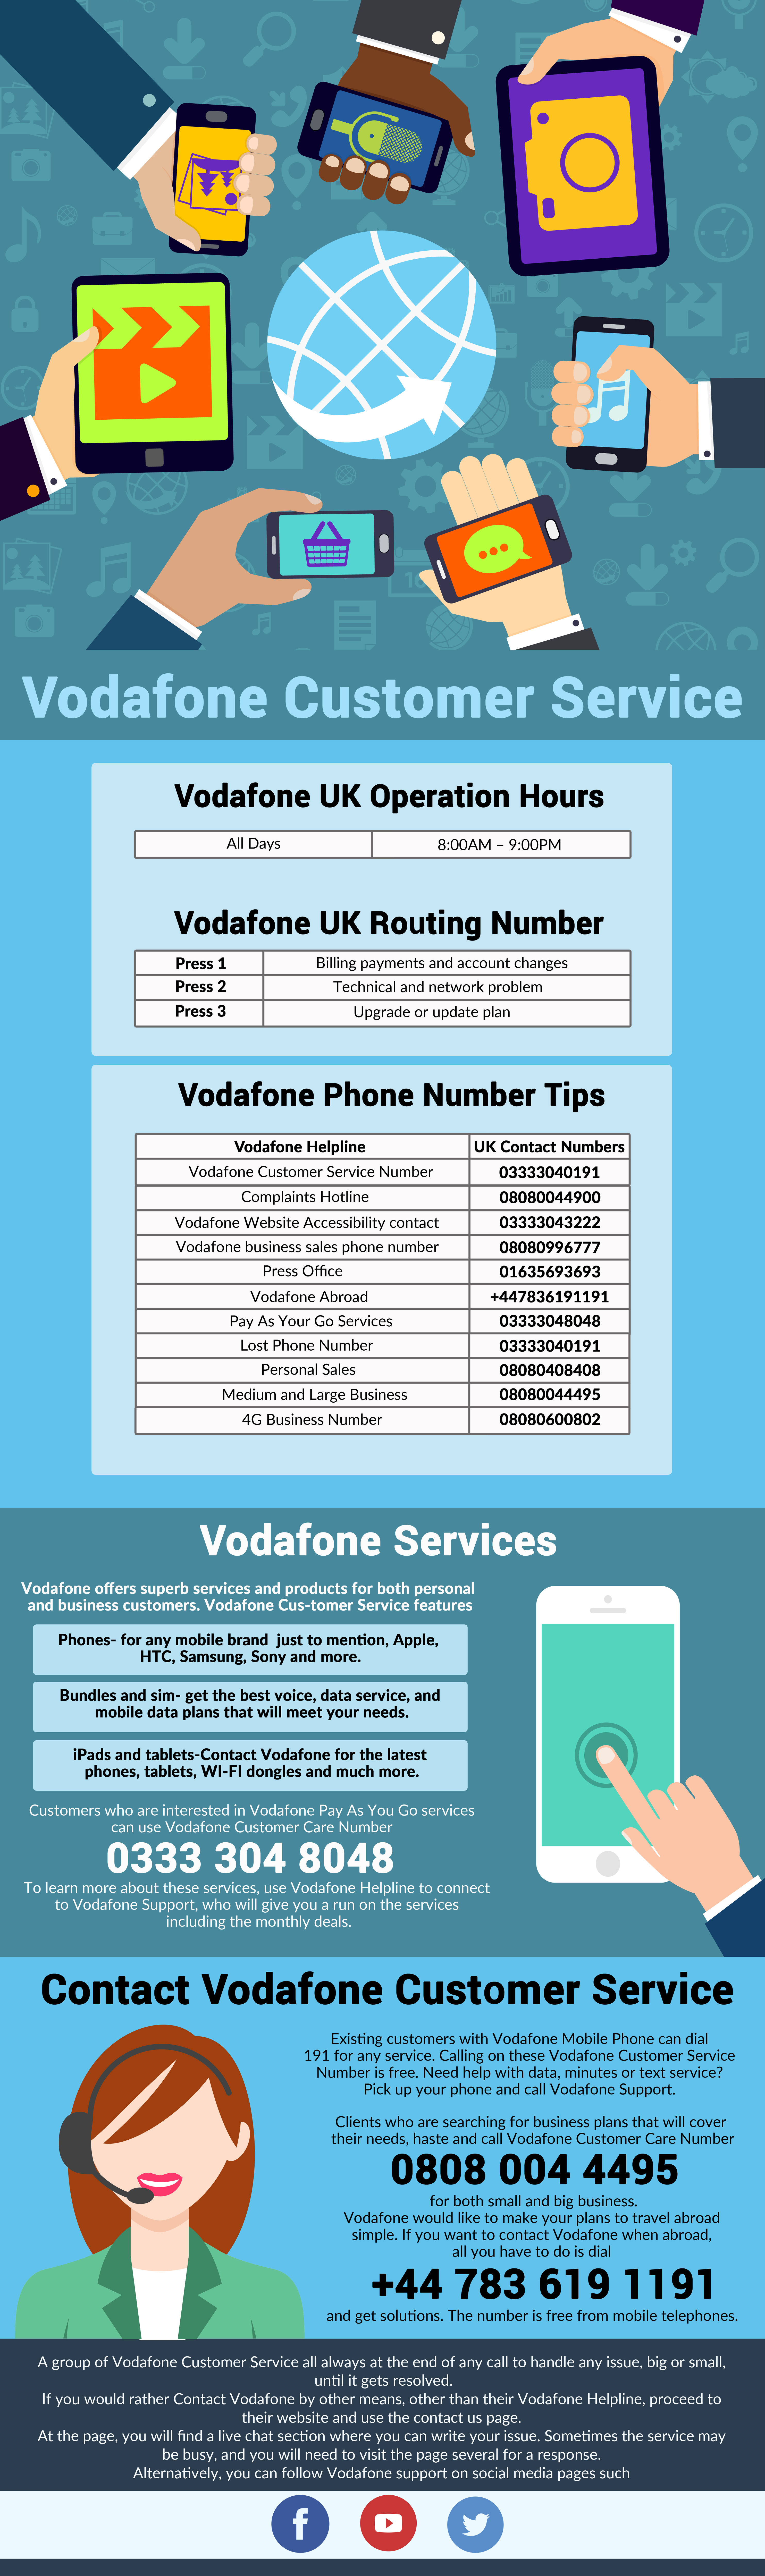 Solution To All Your Problems: Call Vodafone UK Contact